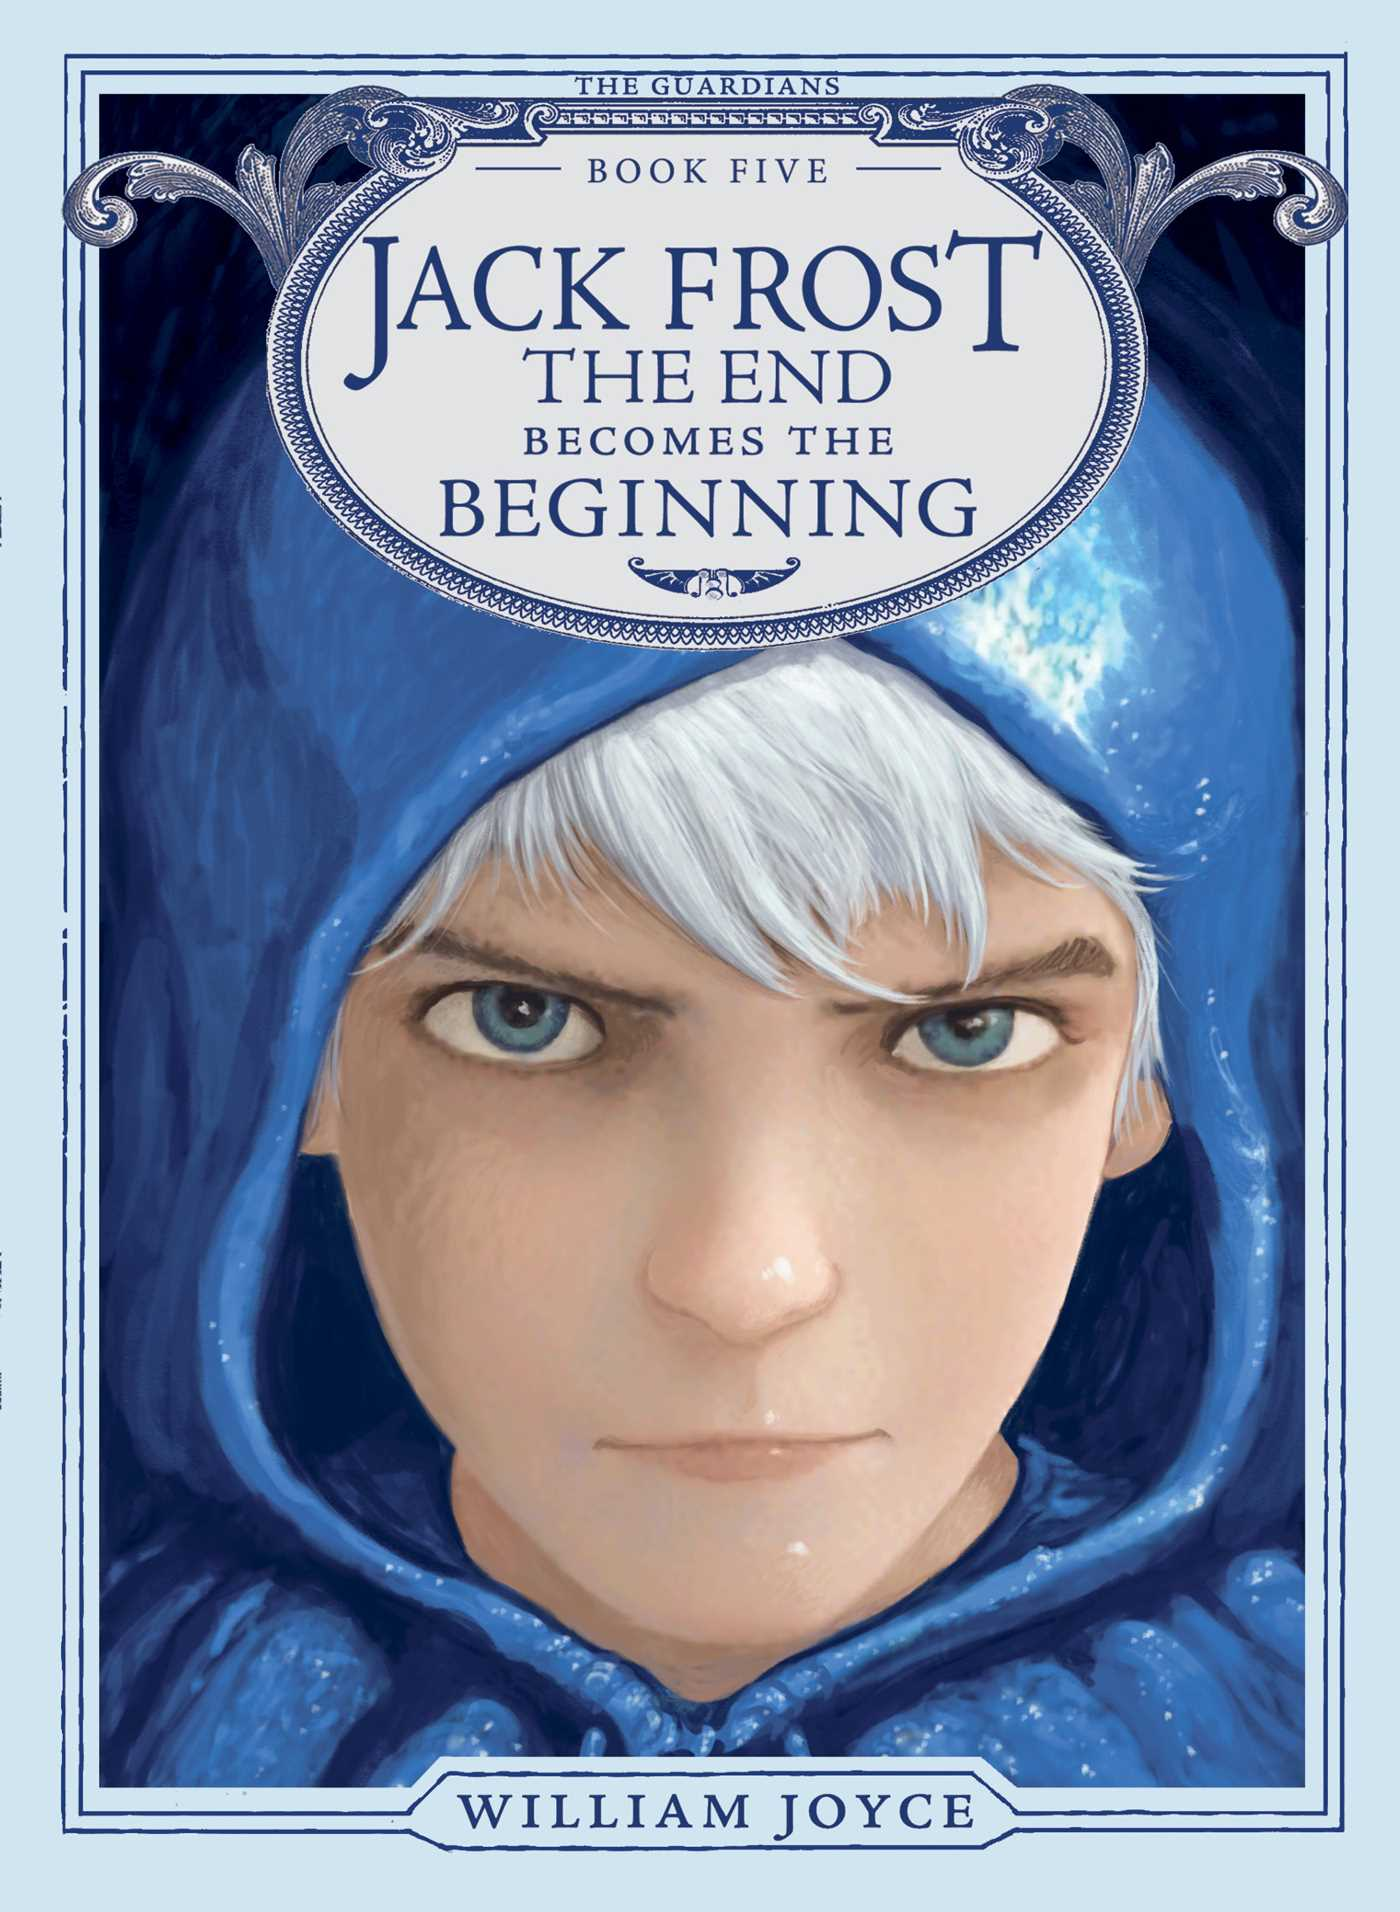 Jack frost 9781481415545 hr